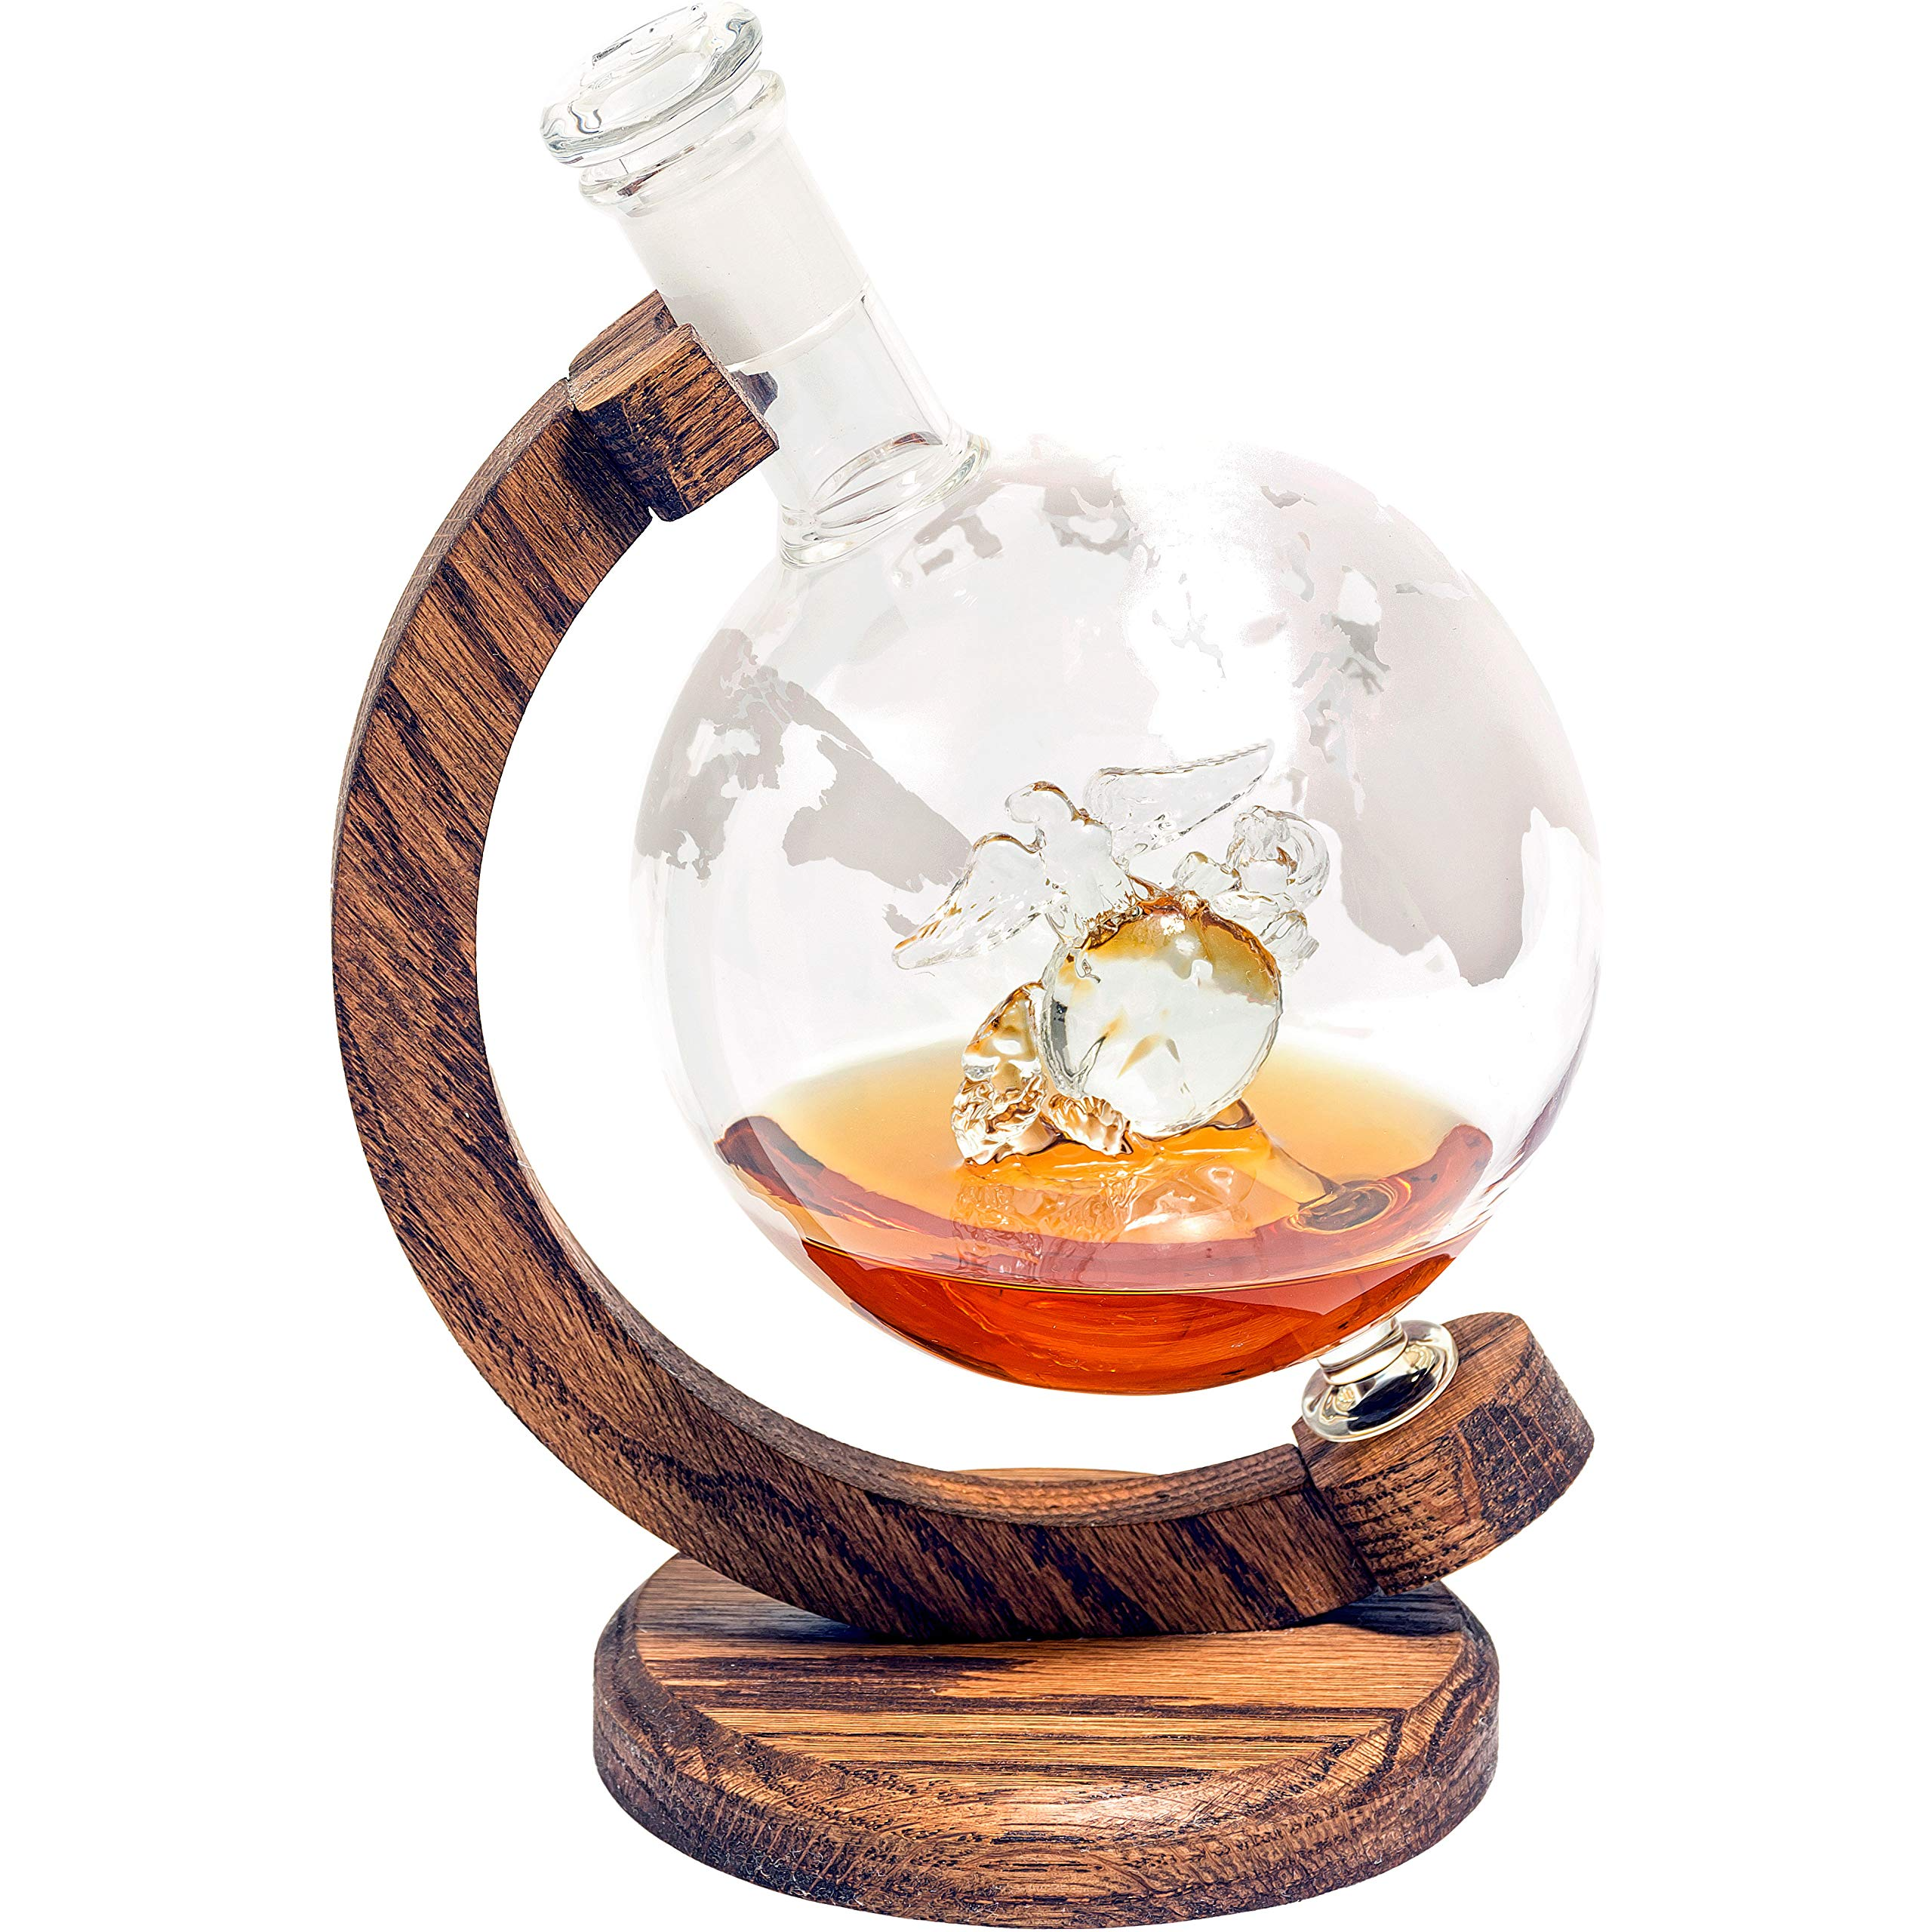 USMC Eagle Globe and Anchor - Marine Graduation Gifts & Veteran Gifts - US Marines EGA Decor Globe Whiskey Decanter (1000ml Decanter, Military Gift) Marine Corps Gifts - USMC Gifts for Men & Women